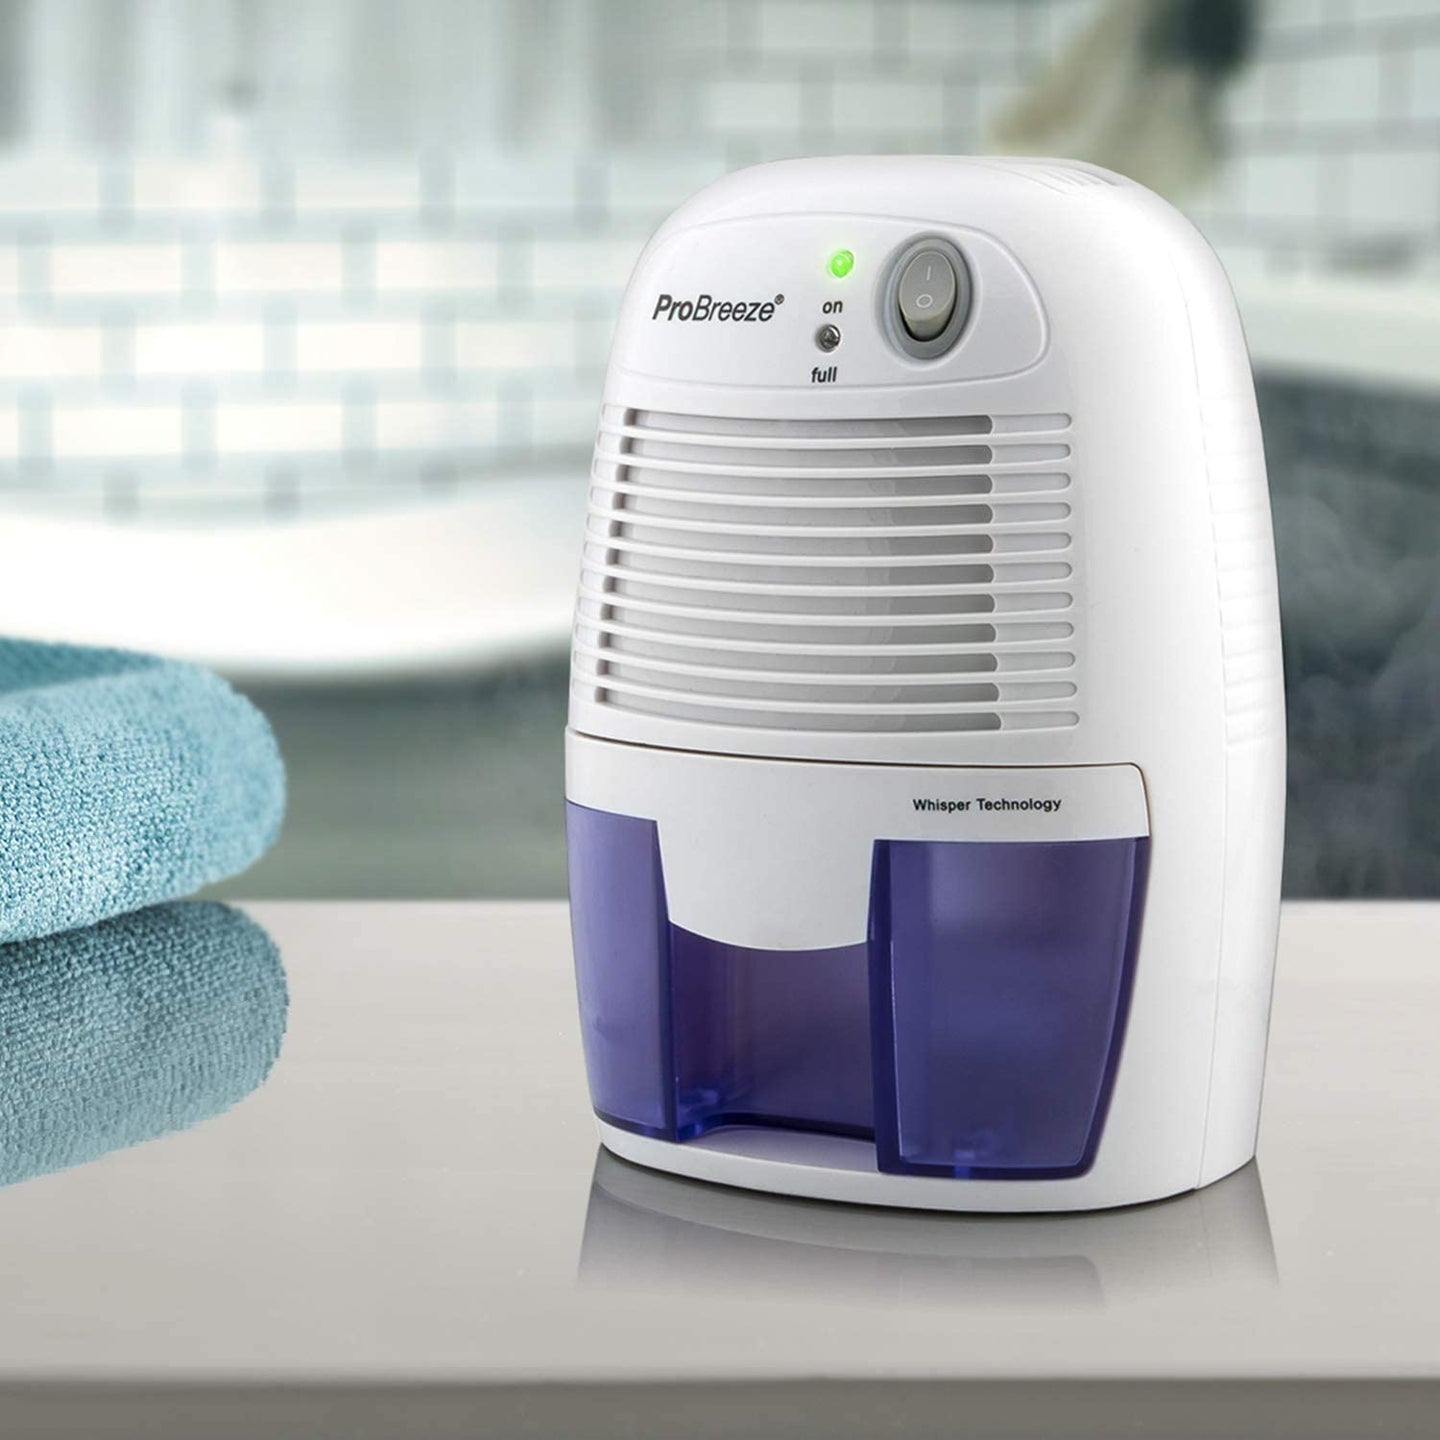 white and purple dehumidifier on a counter